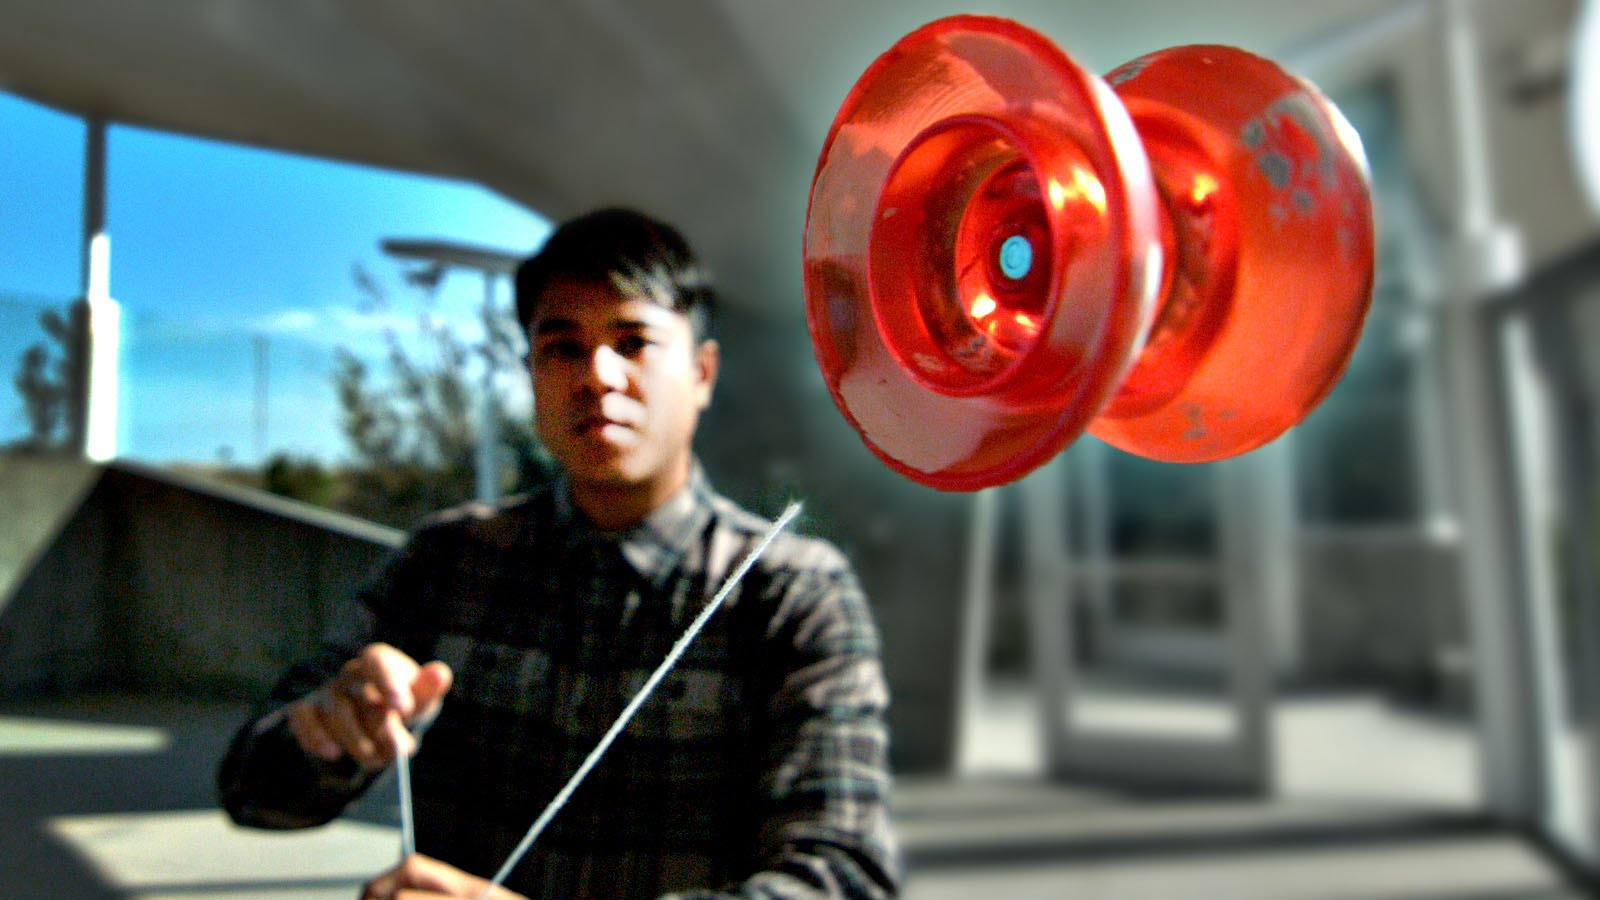 an analysis of the physics of a yo yo toy In his lab, prakash and his students began analyzing yo-yos unlike rotating kitchen appliances, such as an egg beater or salad spinner, that are too slow to separate blood, the yo-yo was fast but it was difficult to master and not practical soon, the lab was full of all types of rotating and spinning toys, from tops to gyroscopes to.